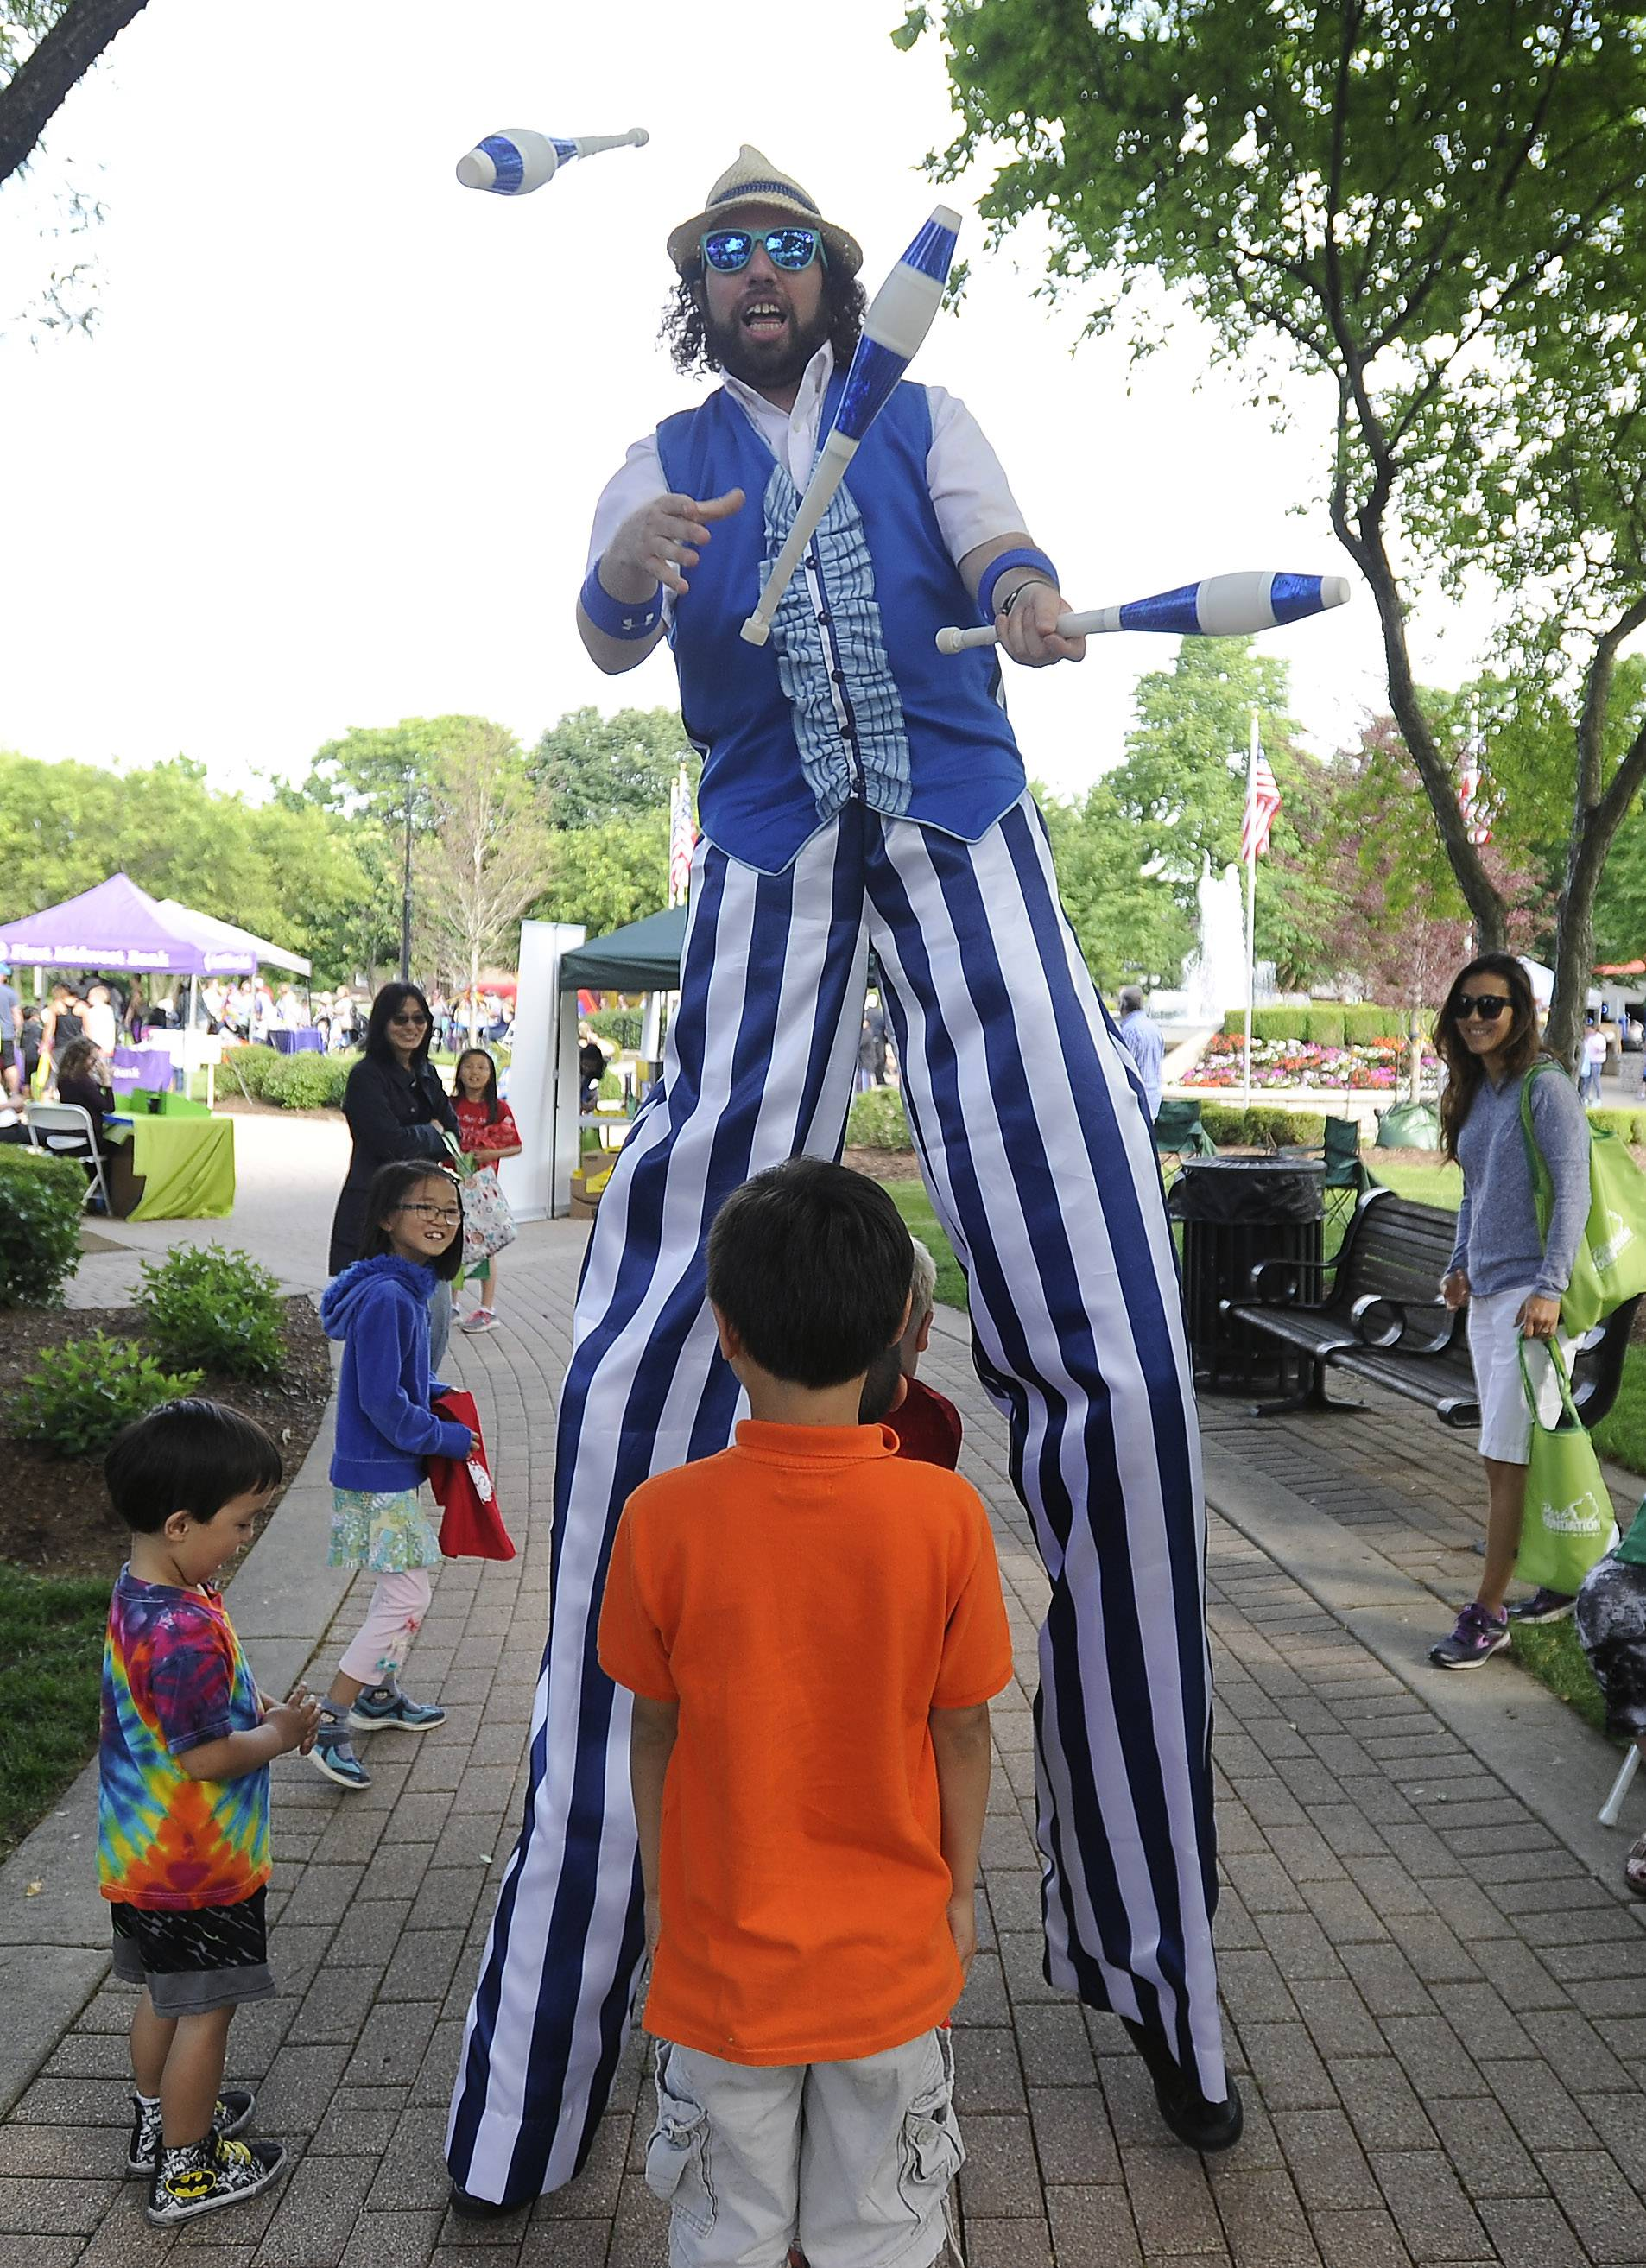 Entertainer Jason Kollum juggles while walking through the crowd of children Friday during Picnic in the Park at North School Park in Arlington Heights.